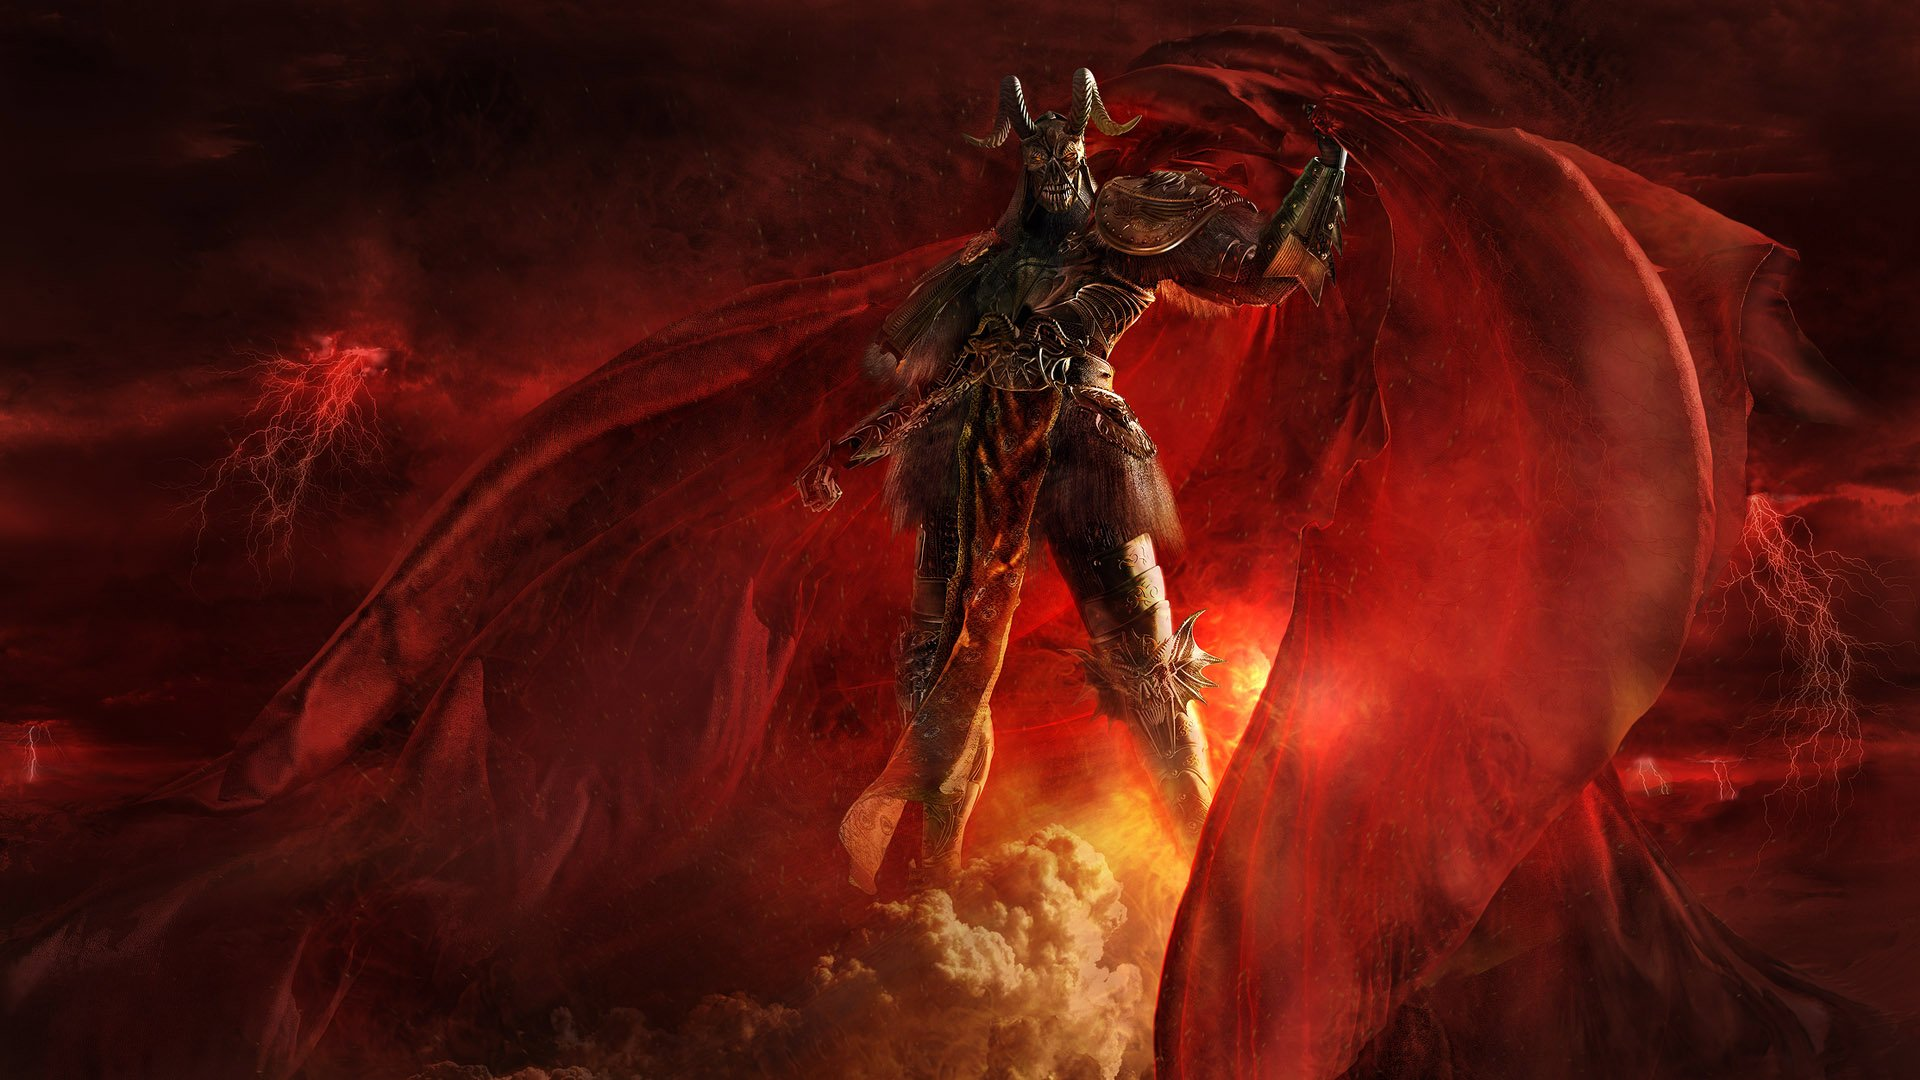 56 hell hd wallpapers | backgrounds - wallpaper abyss